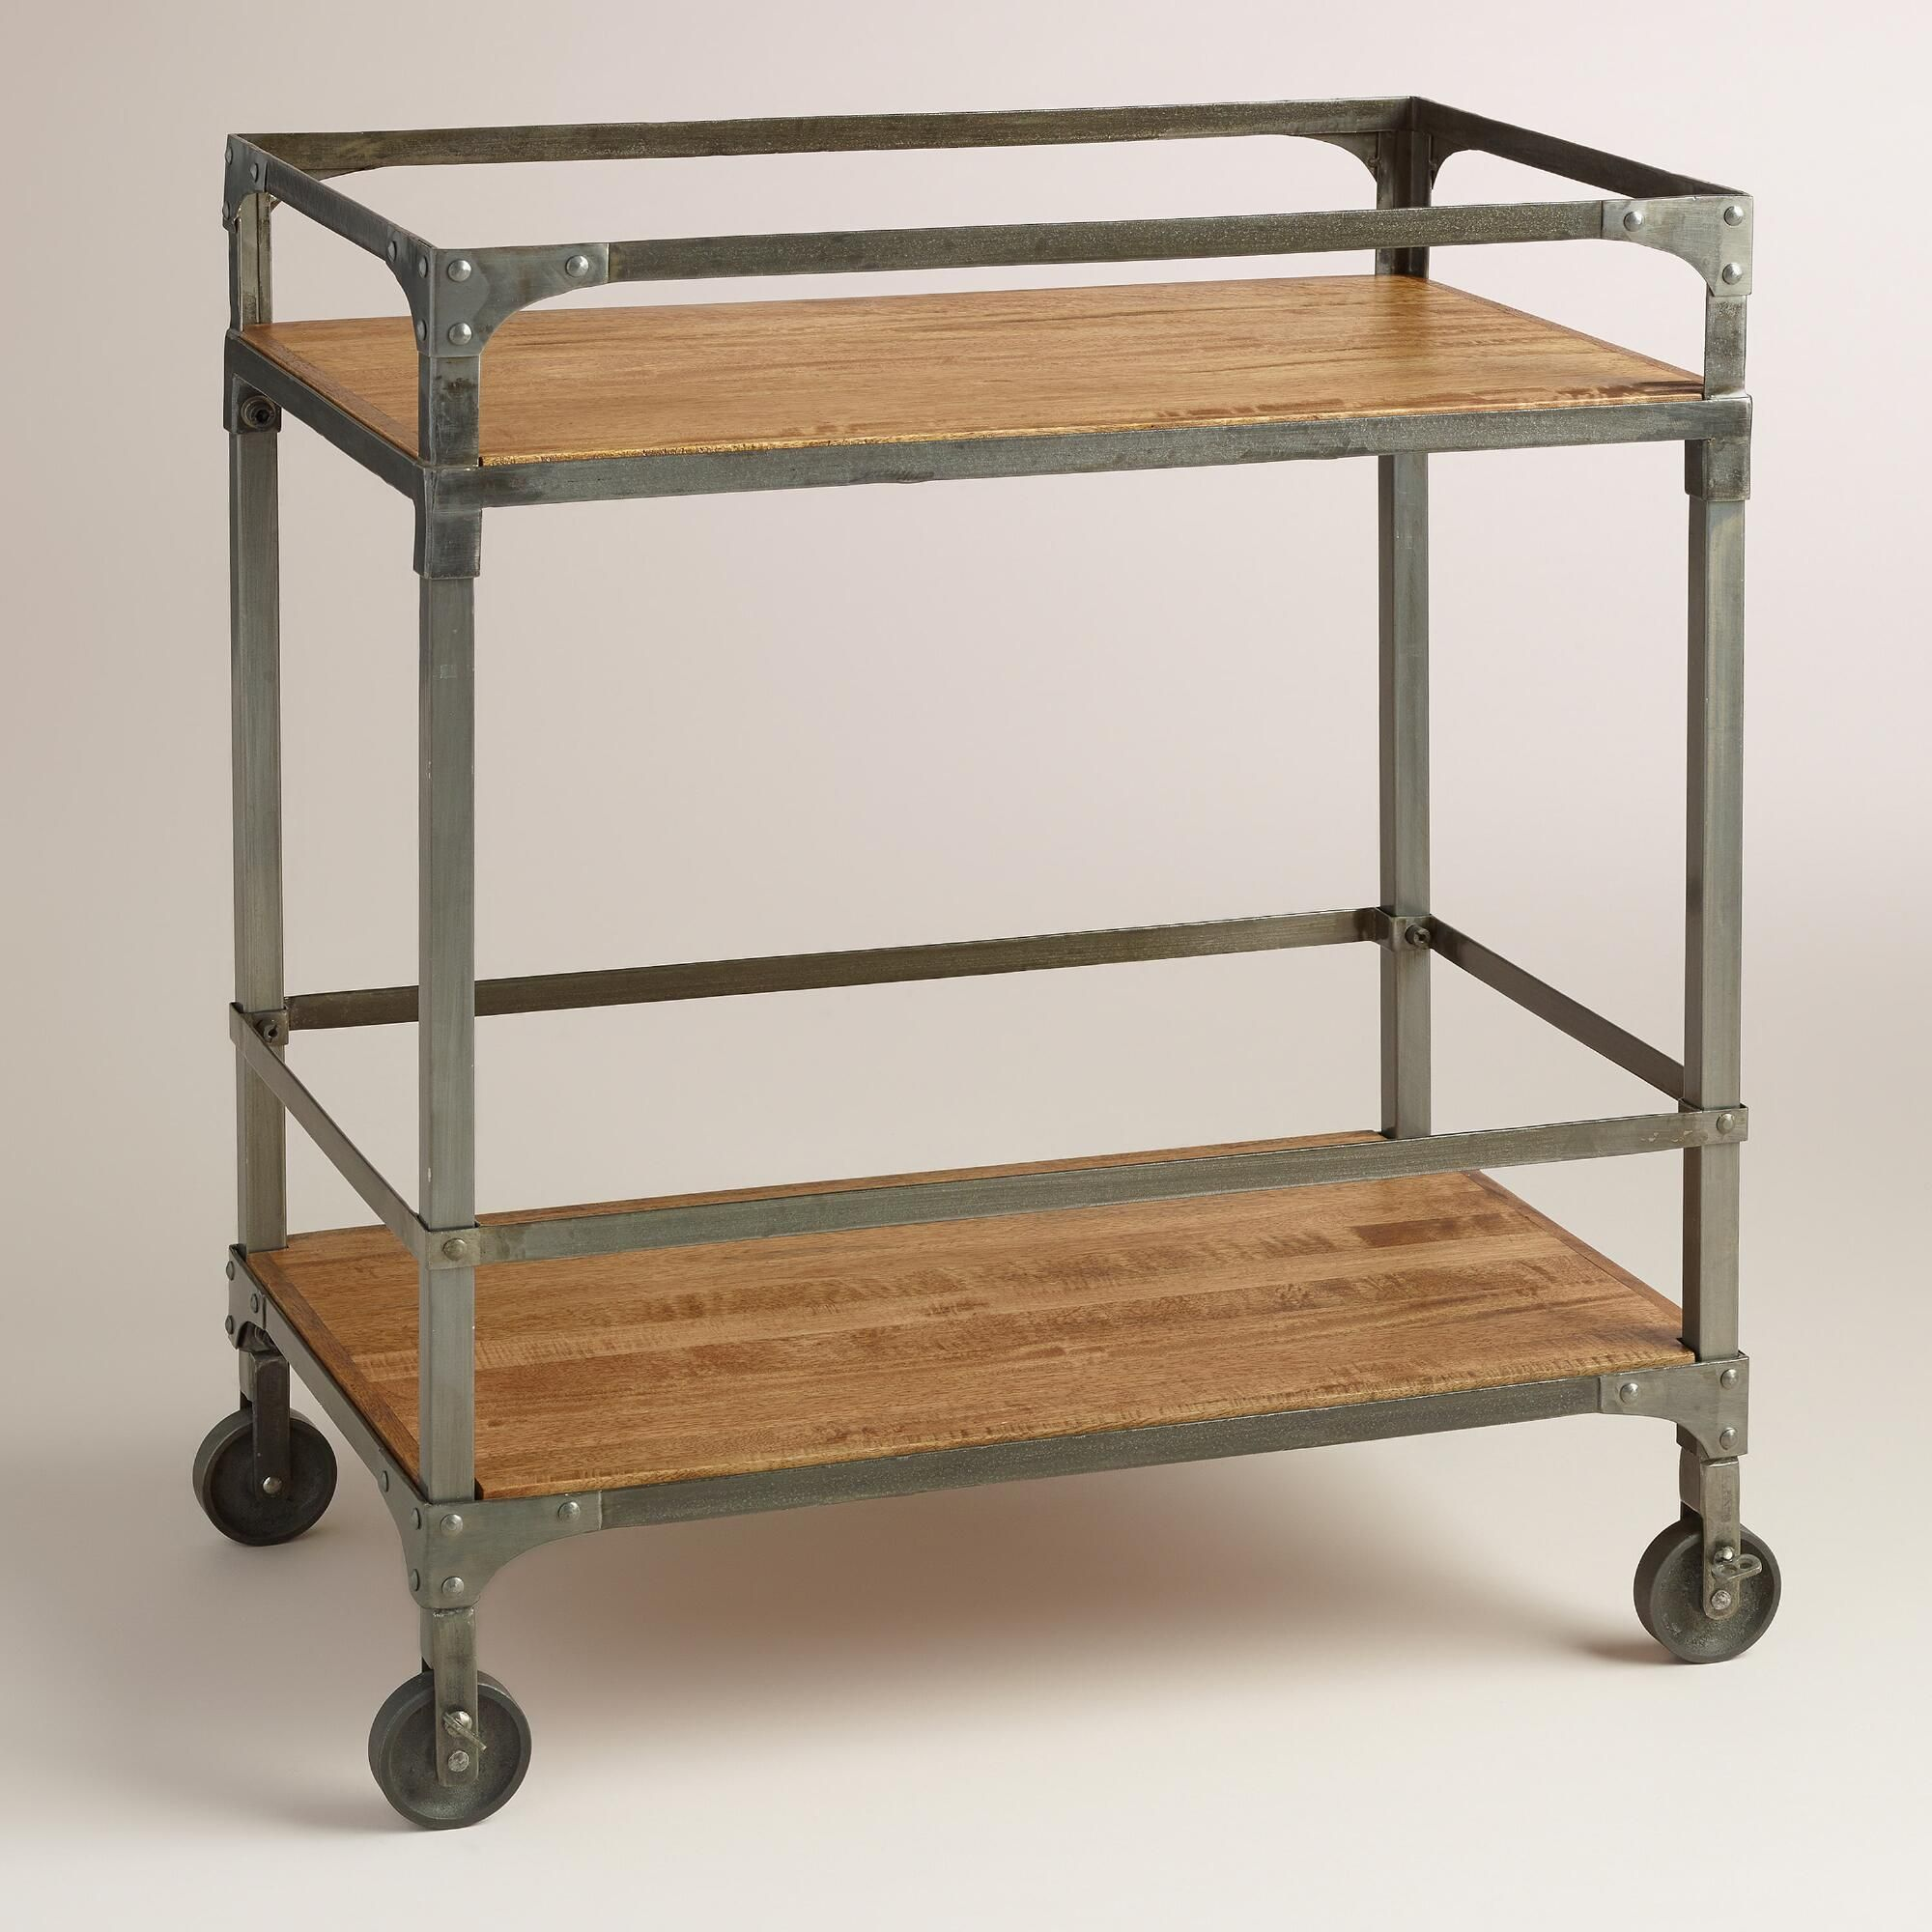 Wood And Metal Industrial Kitchen Cart: Bring An Industrial-chic Feel To Your Kitchen Or Home Bar